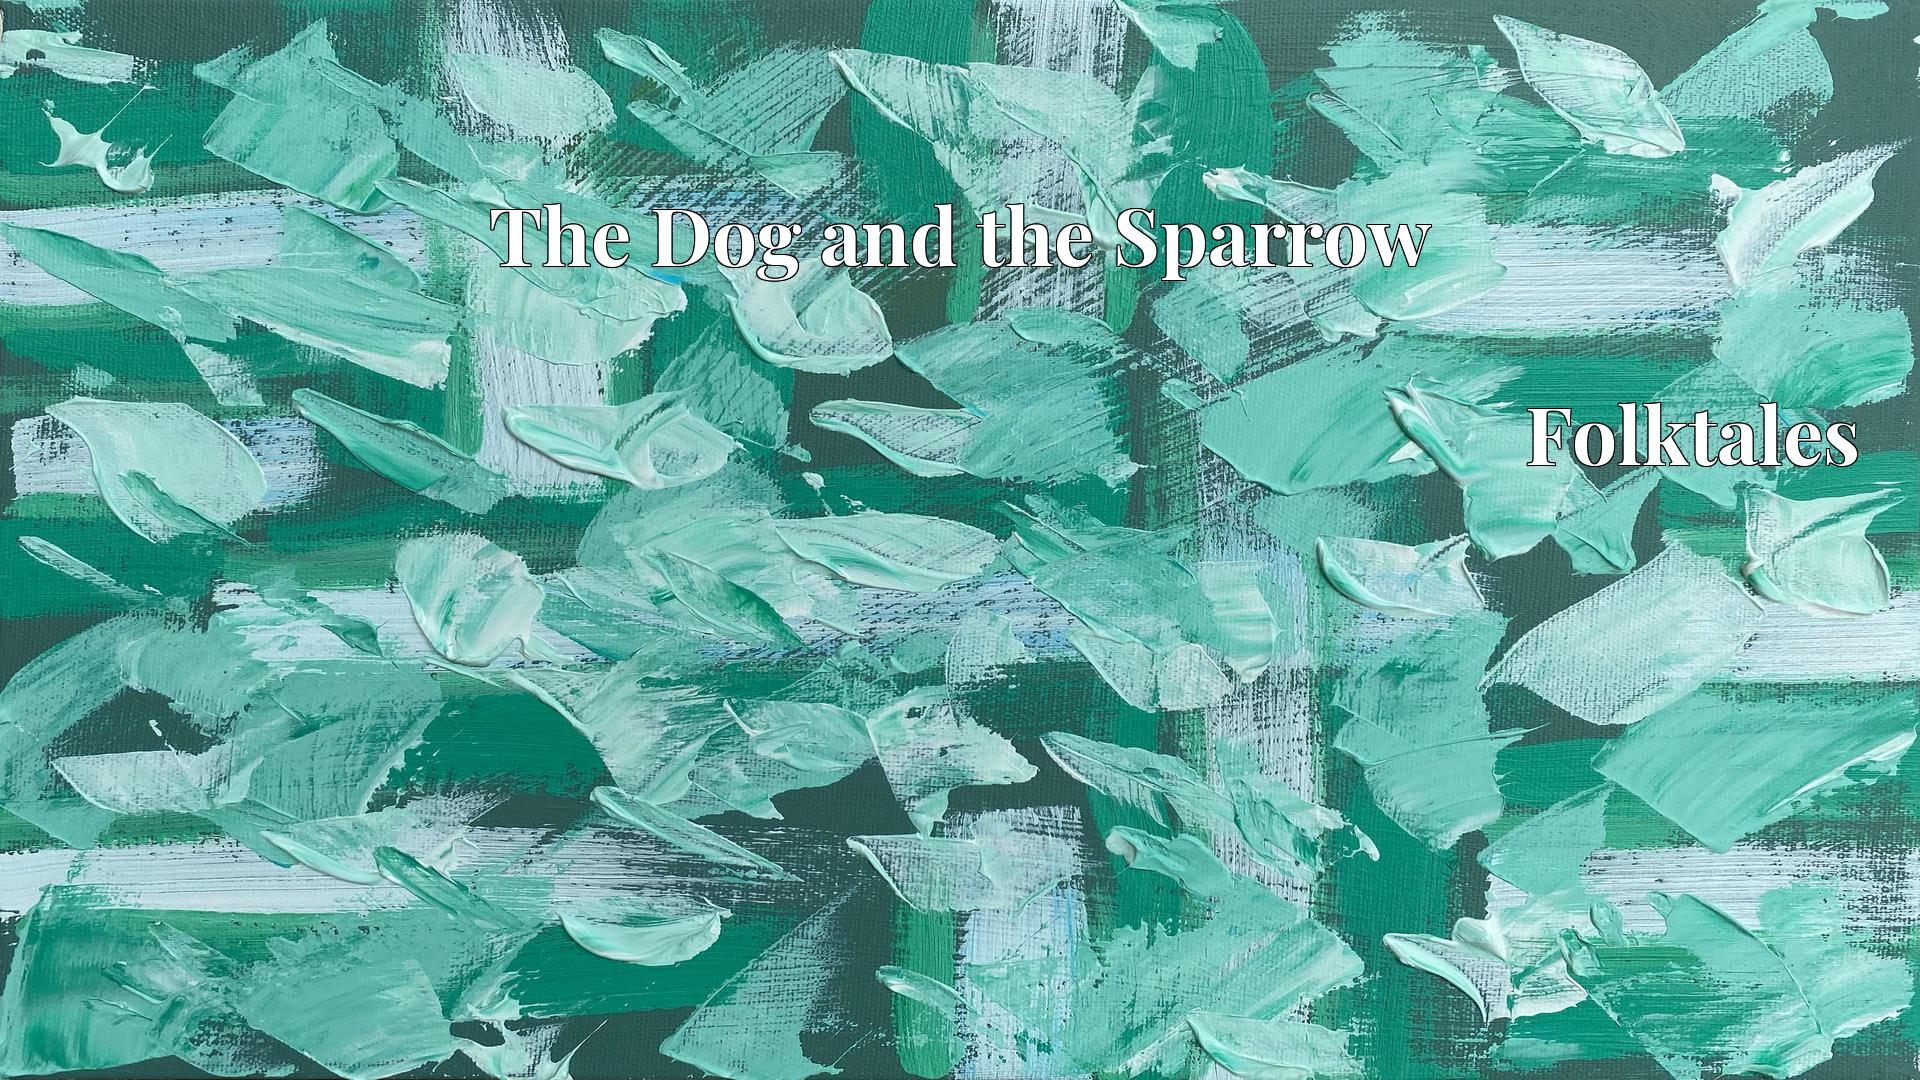 The Dog and the Sparrow - Folktales